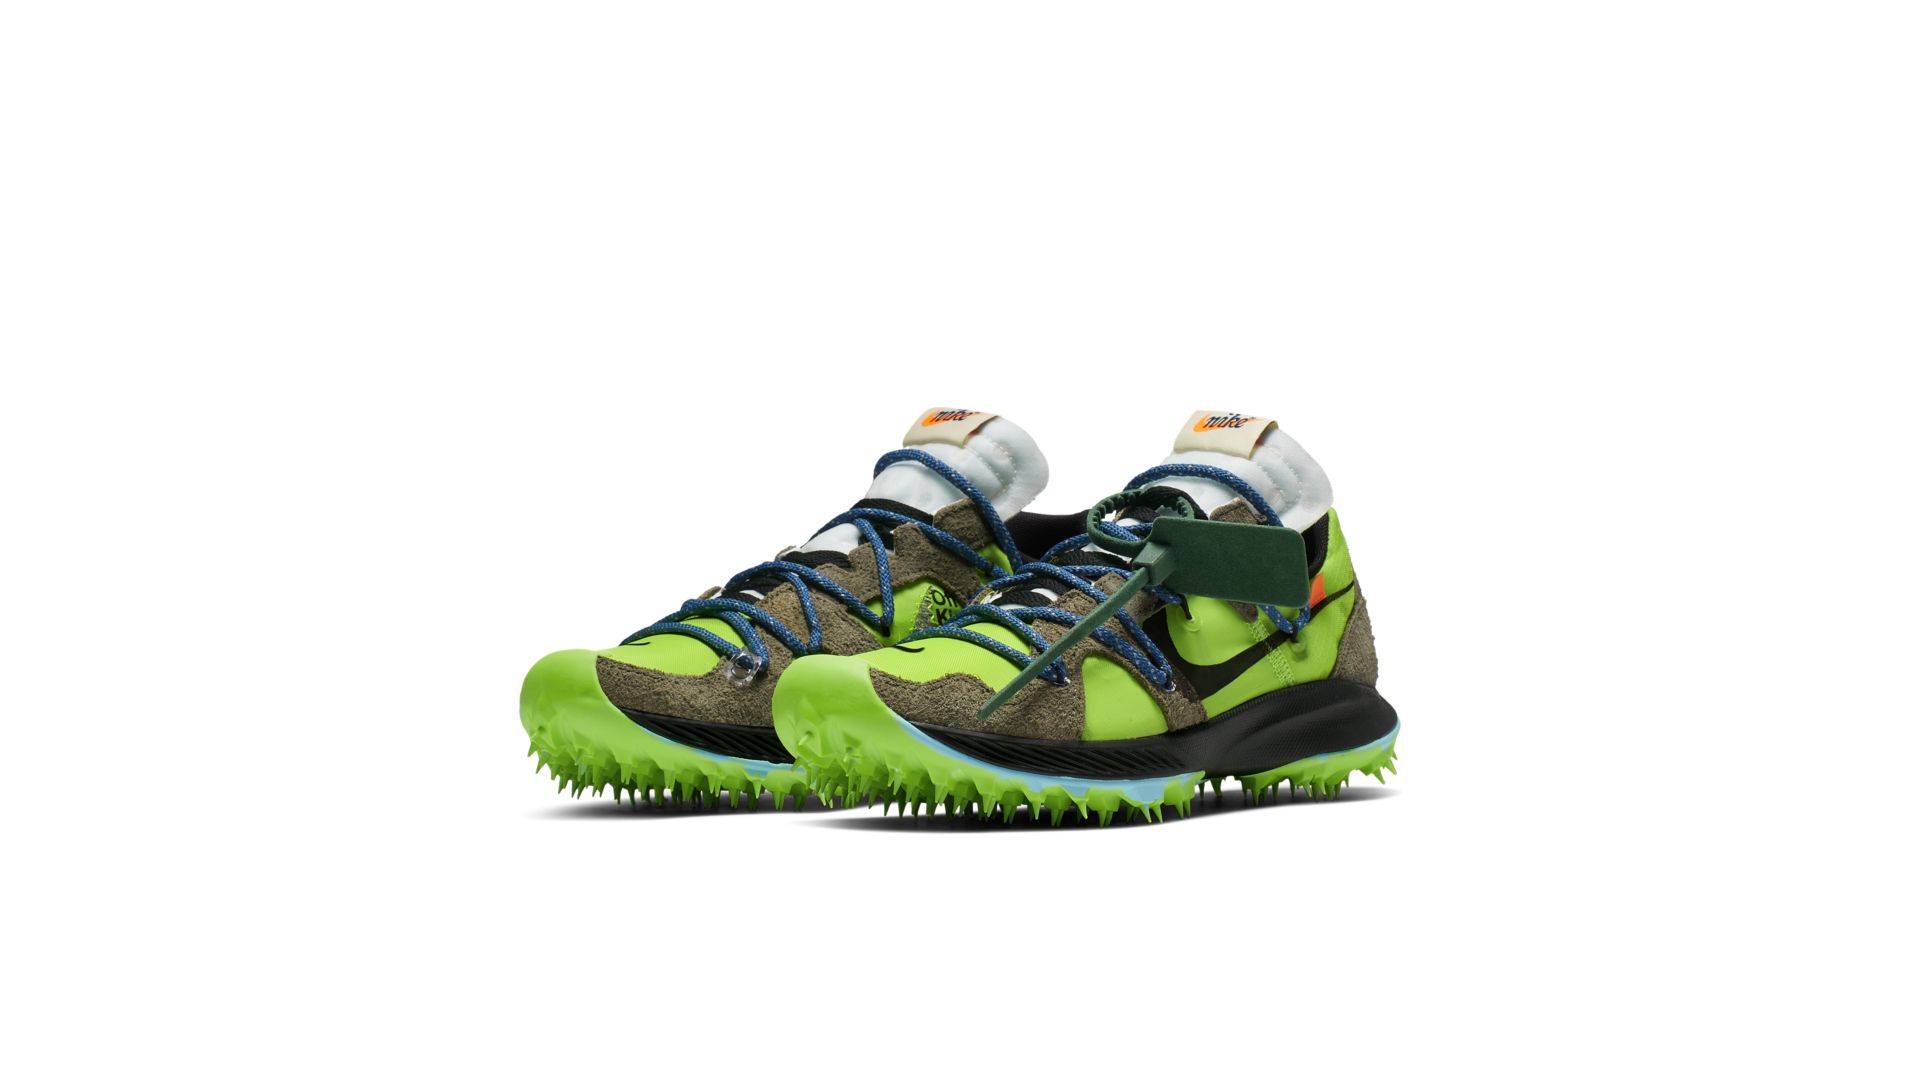 Nike Zoom Terra Kiger 5 Off-White Electric Green (W) (CD8179-300)